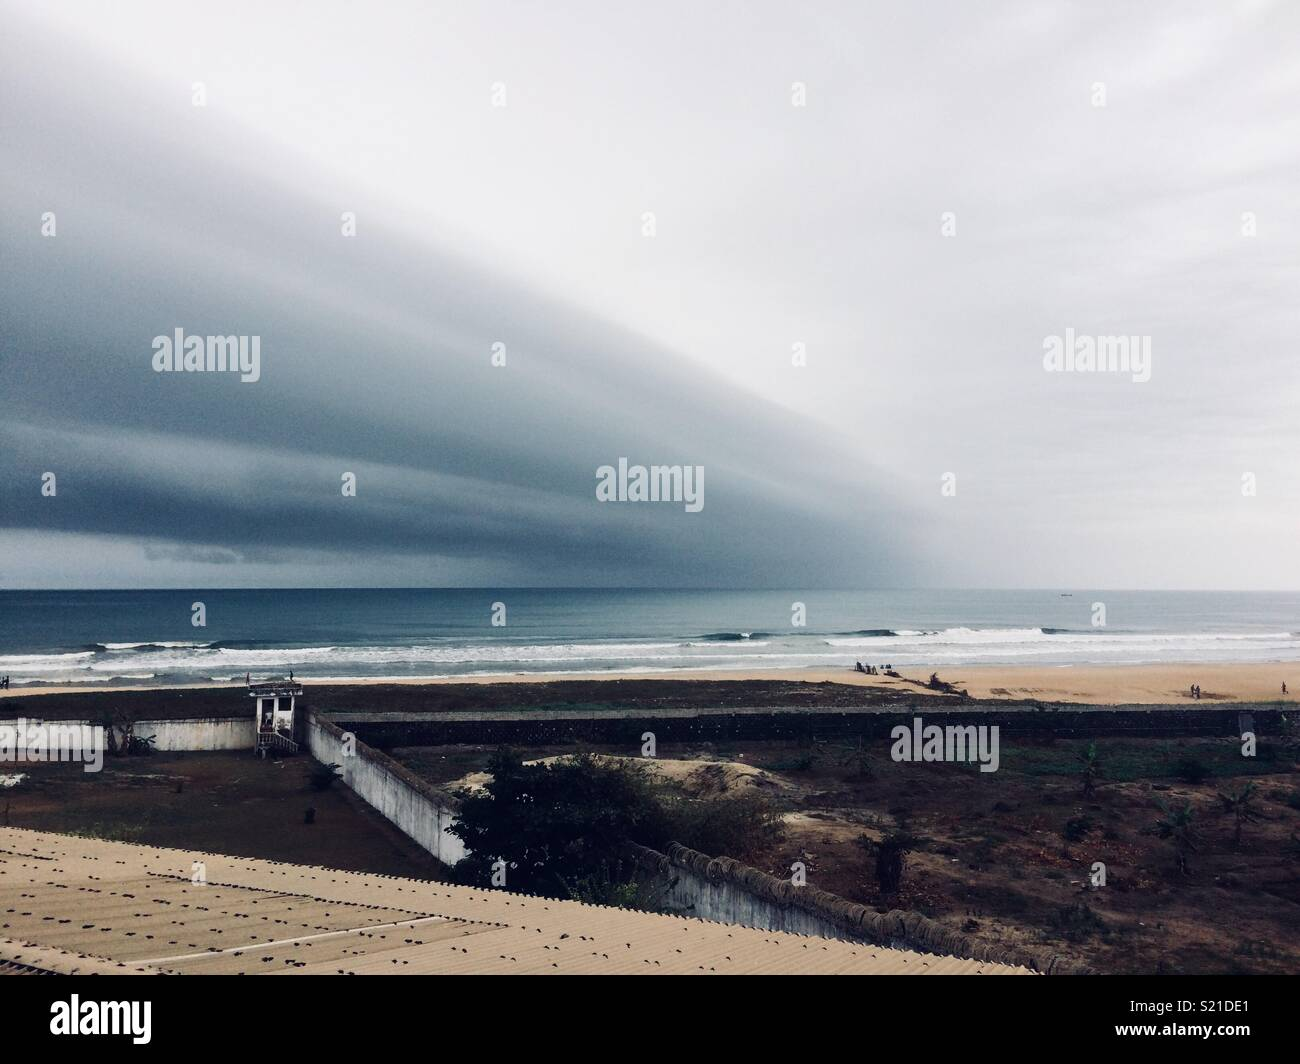 A storm brewing in Monrovia, Liberia - Stock Image